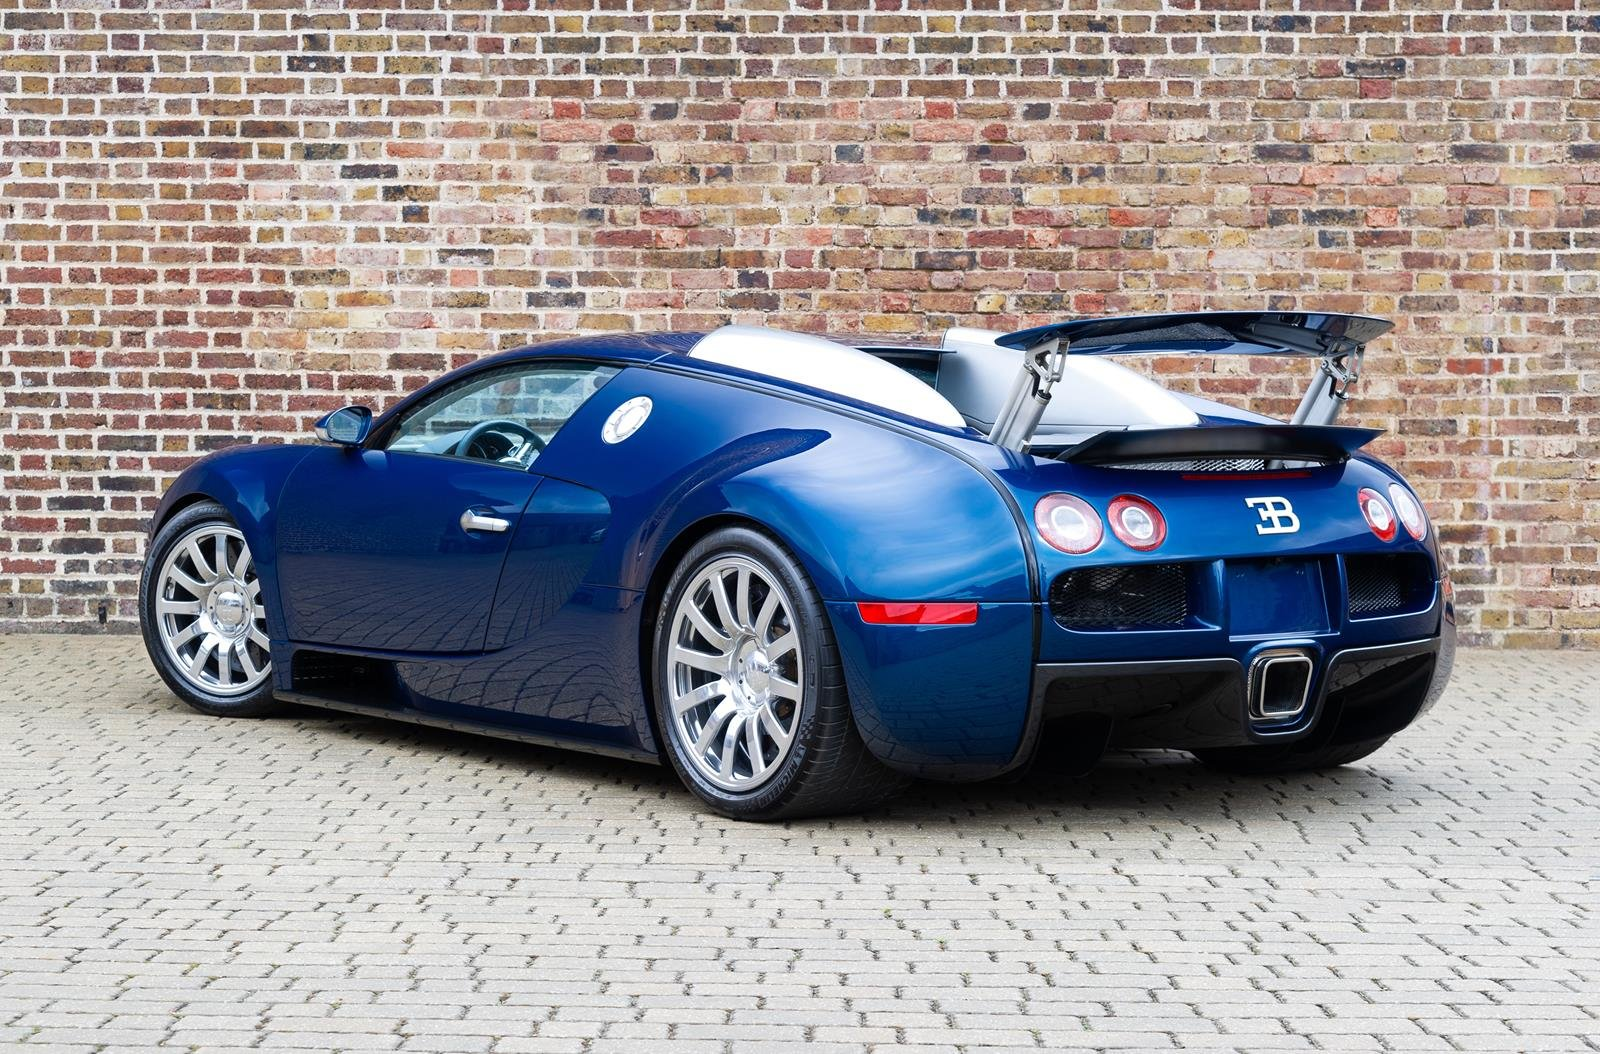 2008 Bugatti Veyron 16.4 -3 Year Bugatti Service Package Included For Sale (picture 2 of 6)